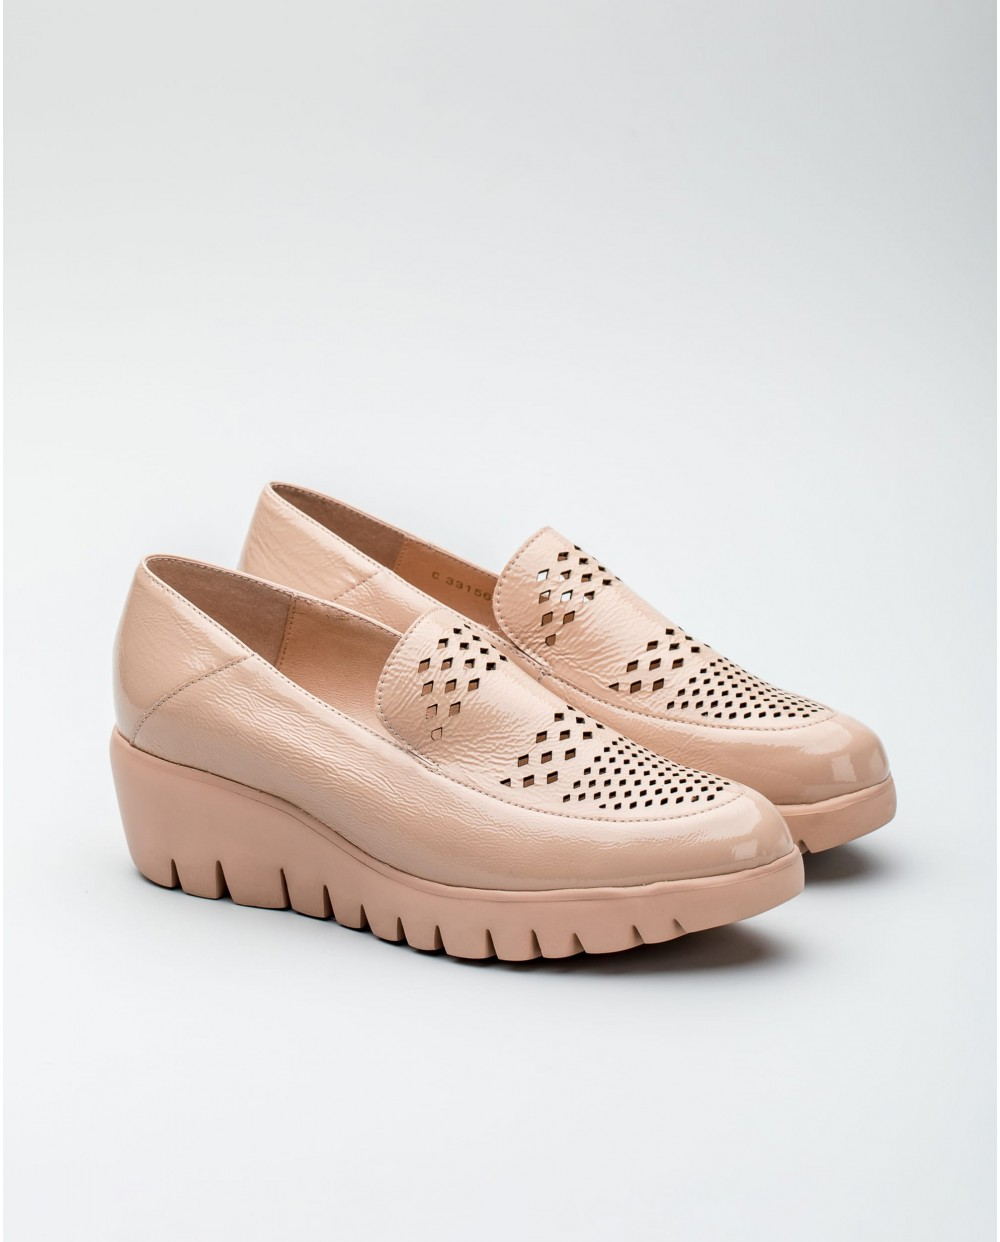 Leather loafer mule